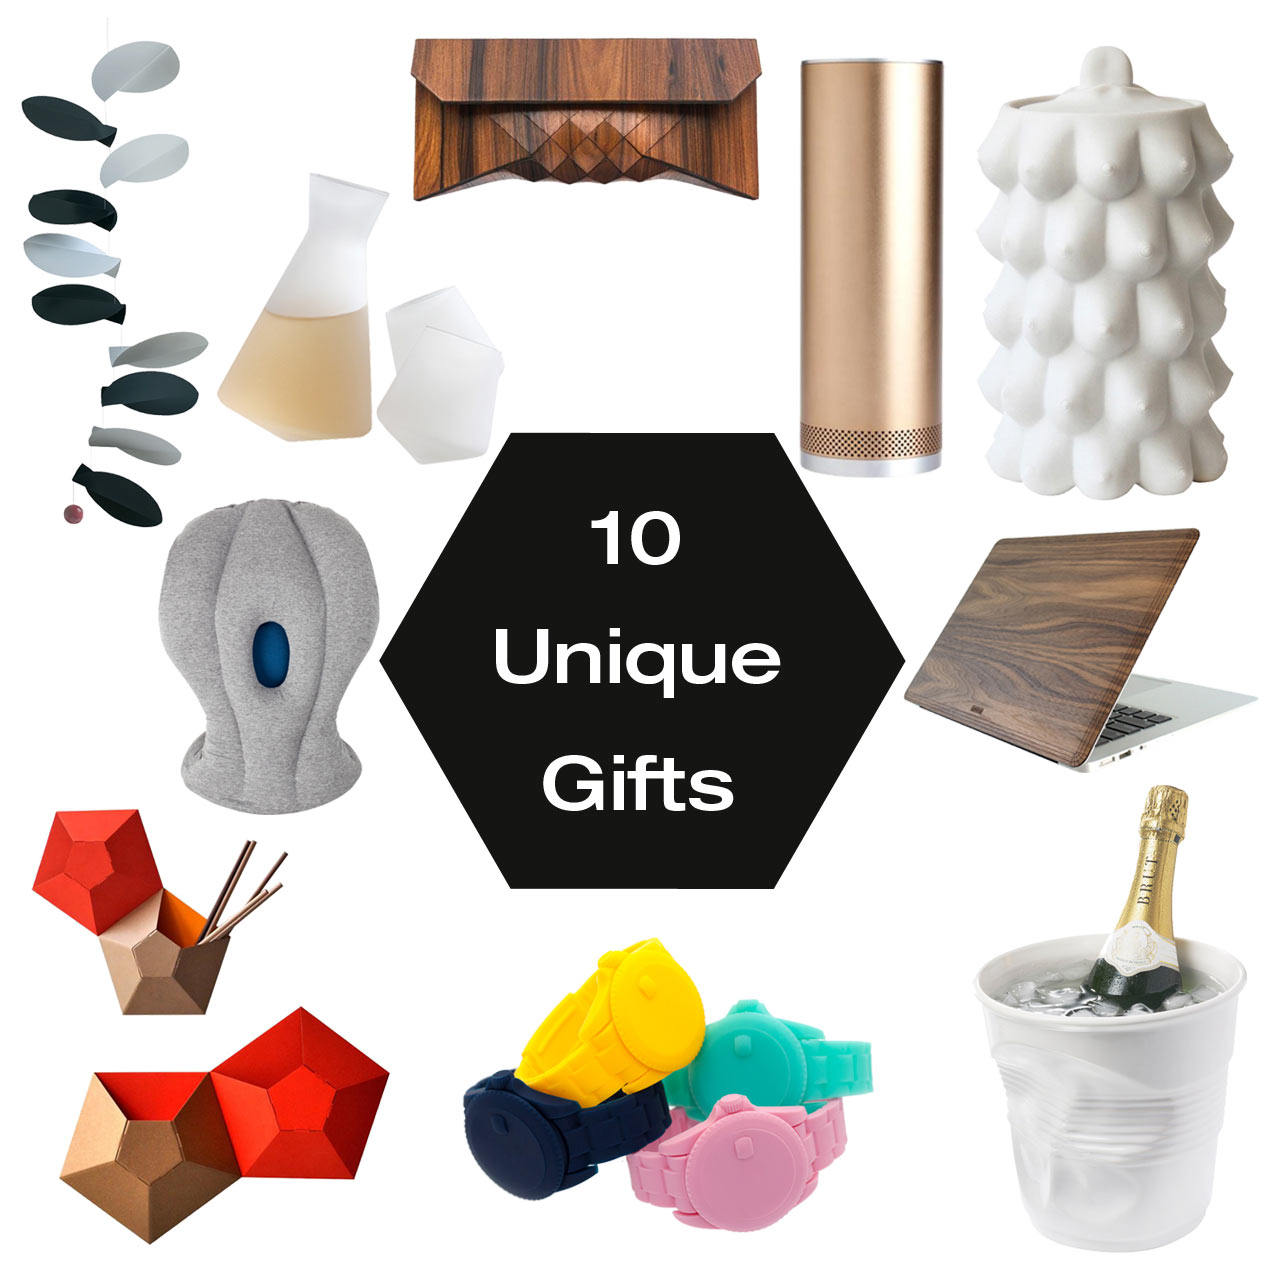 Unique Modern Gift Ideas From AHAlife